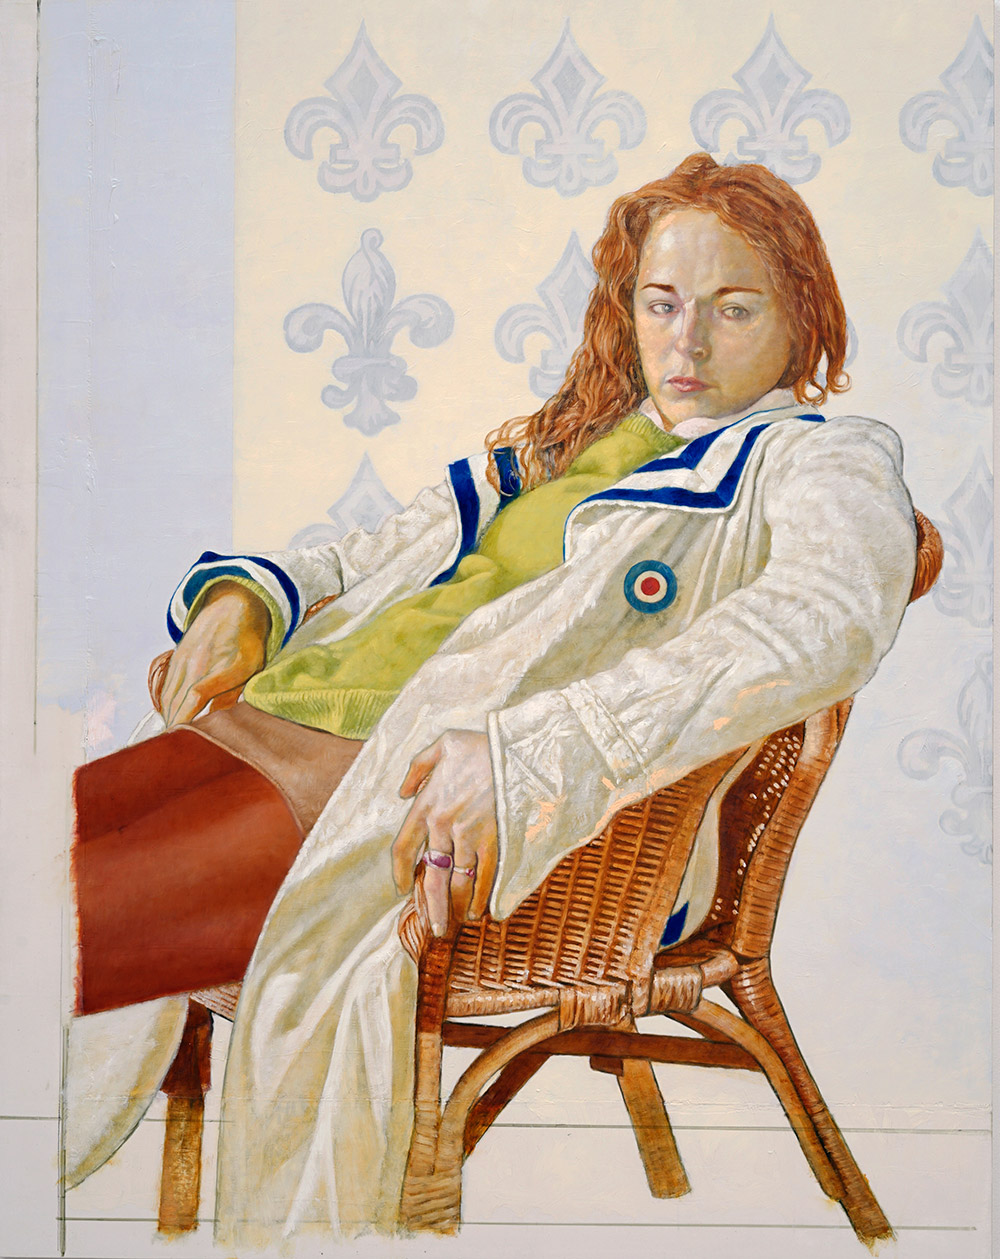 Tadzio (Schubert), 2018, 140 x 118 cm, oil on wax, on canvas, on panel